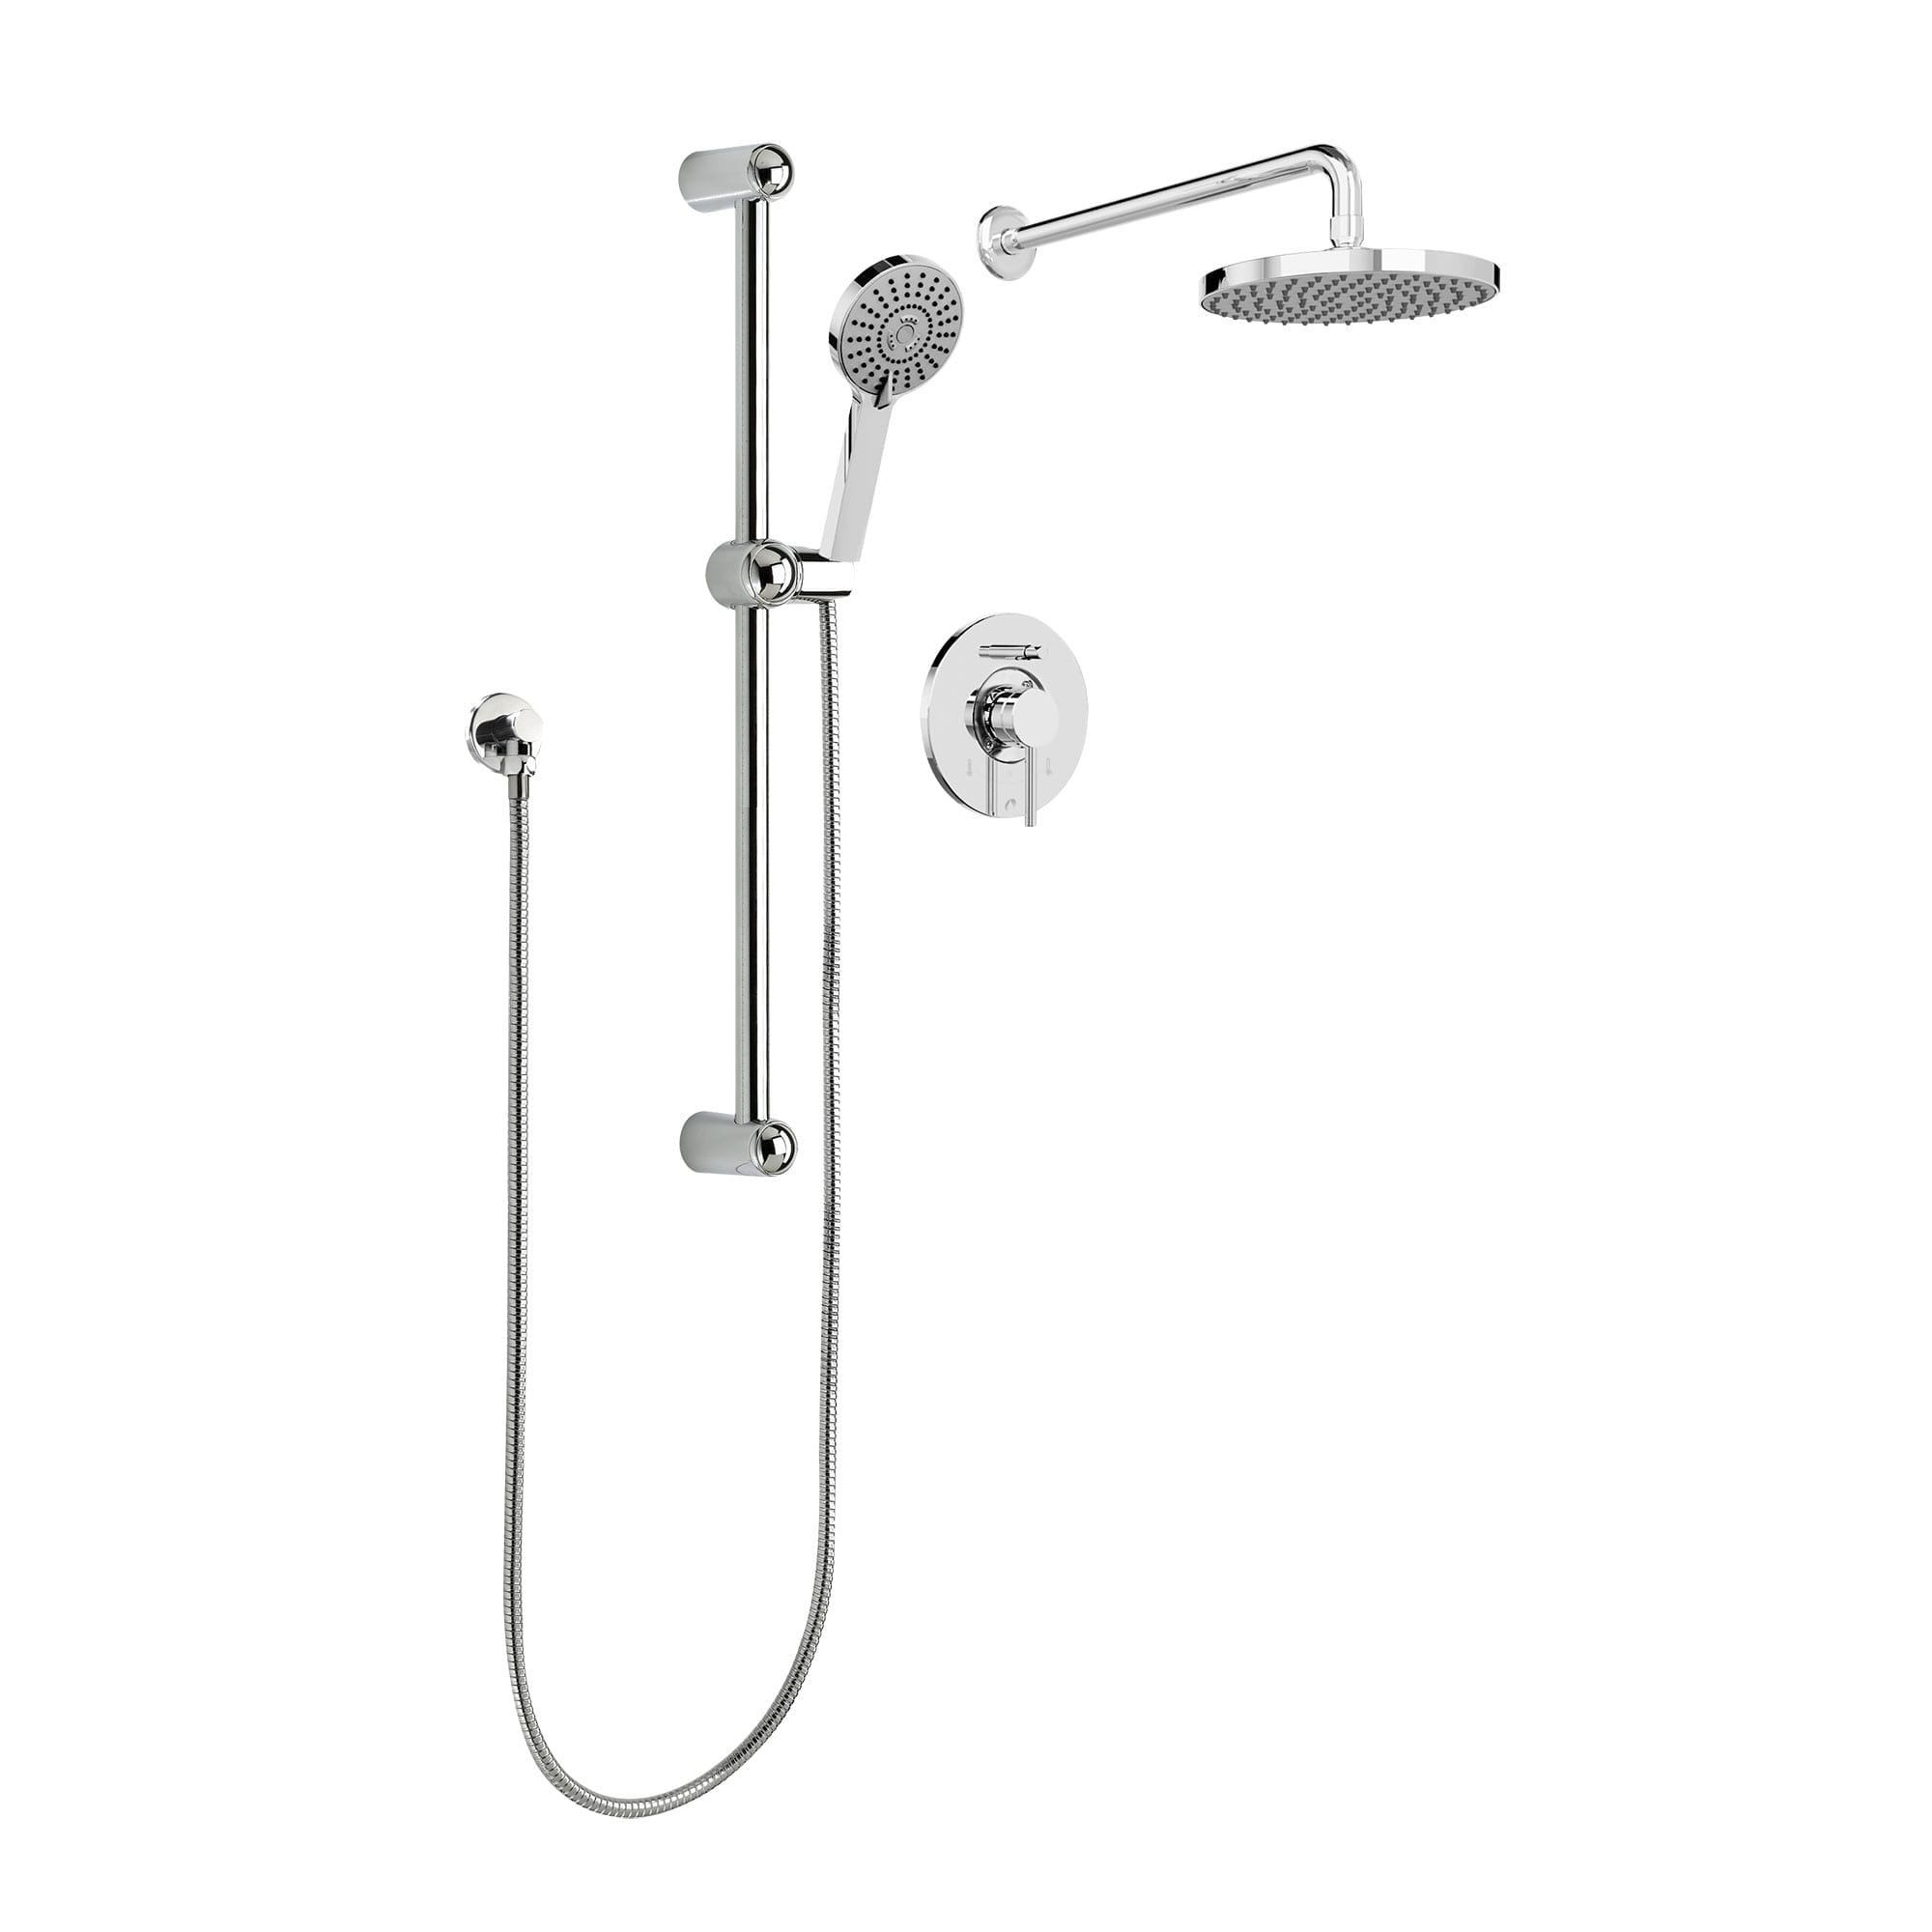 complete shower faucet kits. PCT KIT DEL130CCP jpg  1 Shower Kits Kit Faucet Complete model with Pressure Balanced